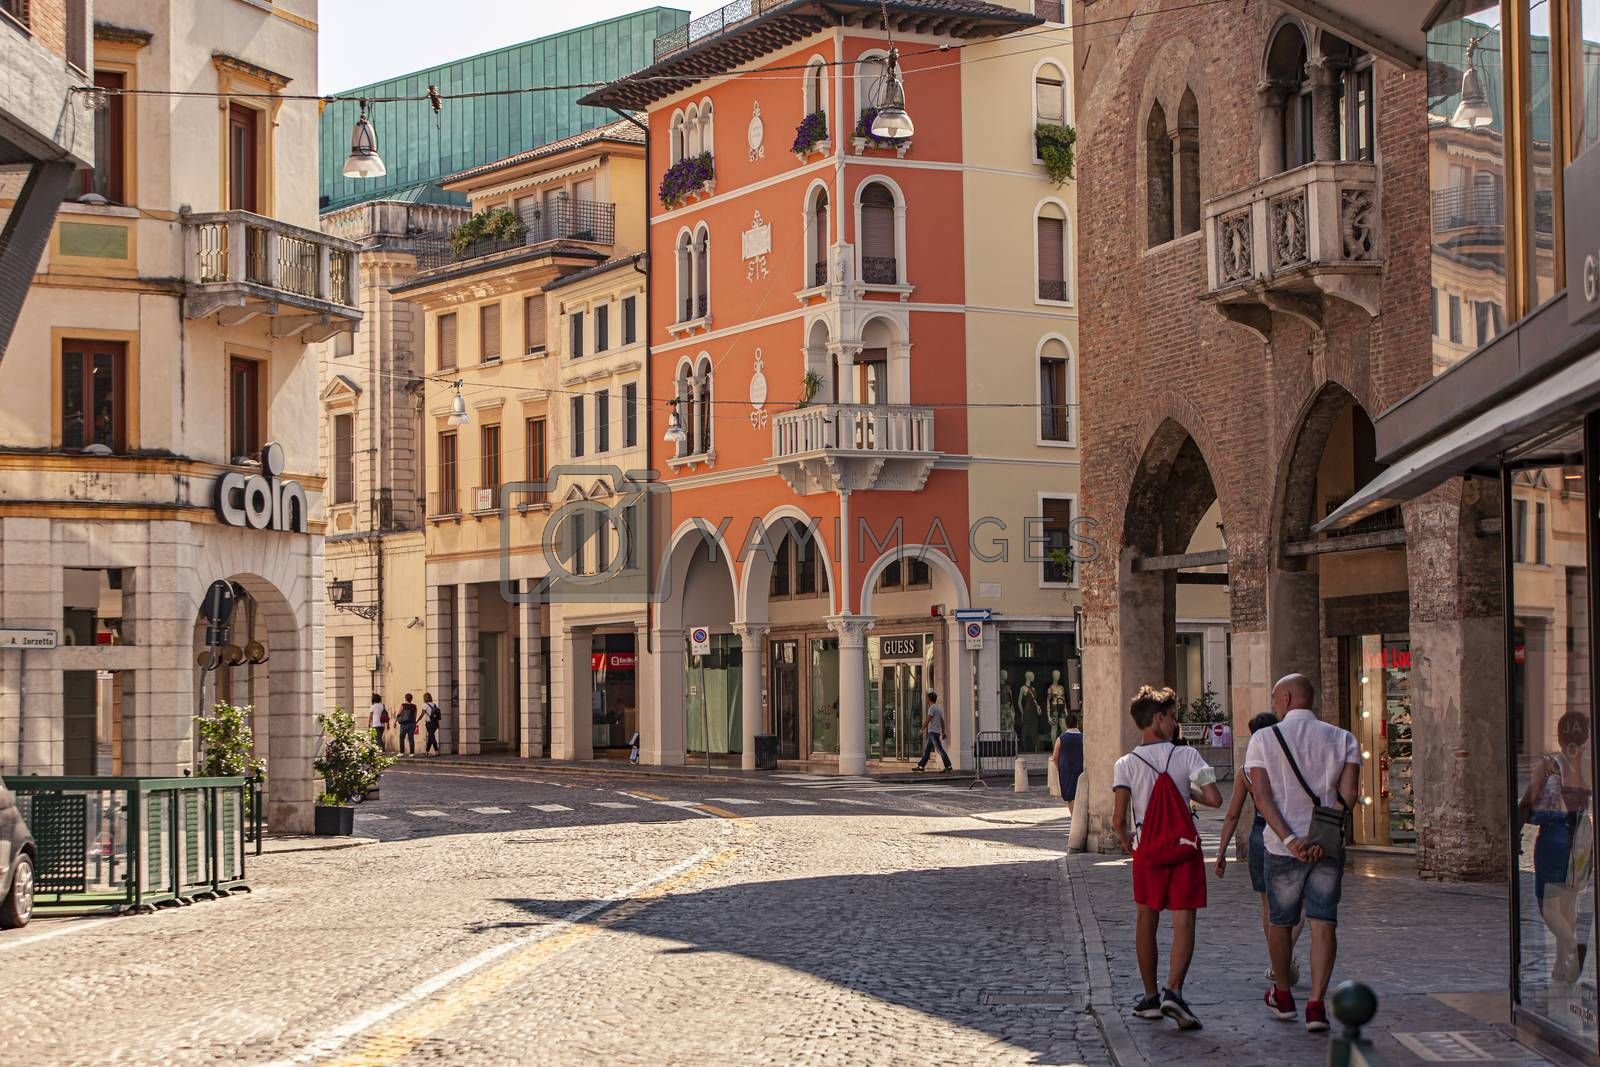 TREVISO, ITALY 13 AUGUST 2020: Landscape of buildings in Treviso in Italy